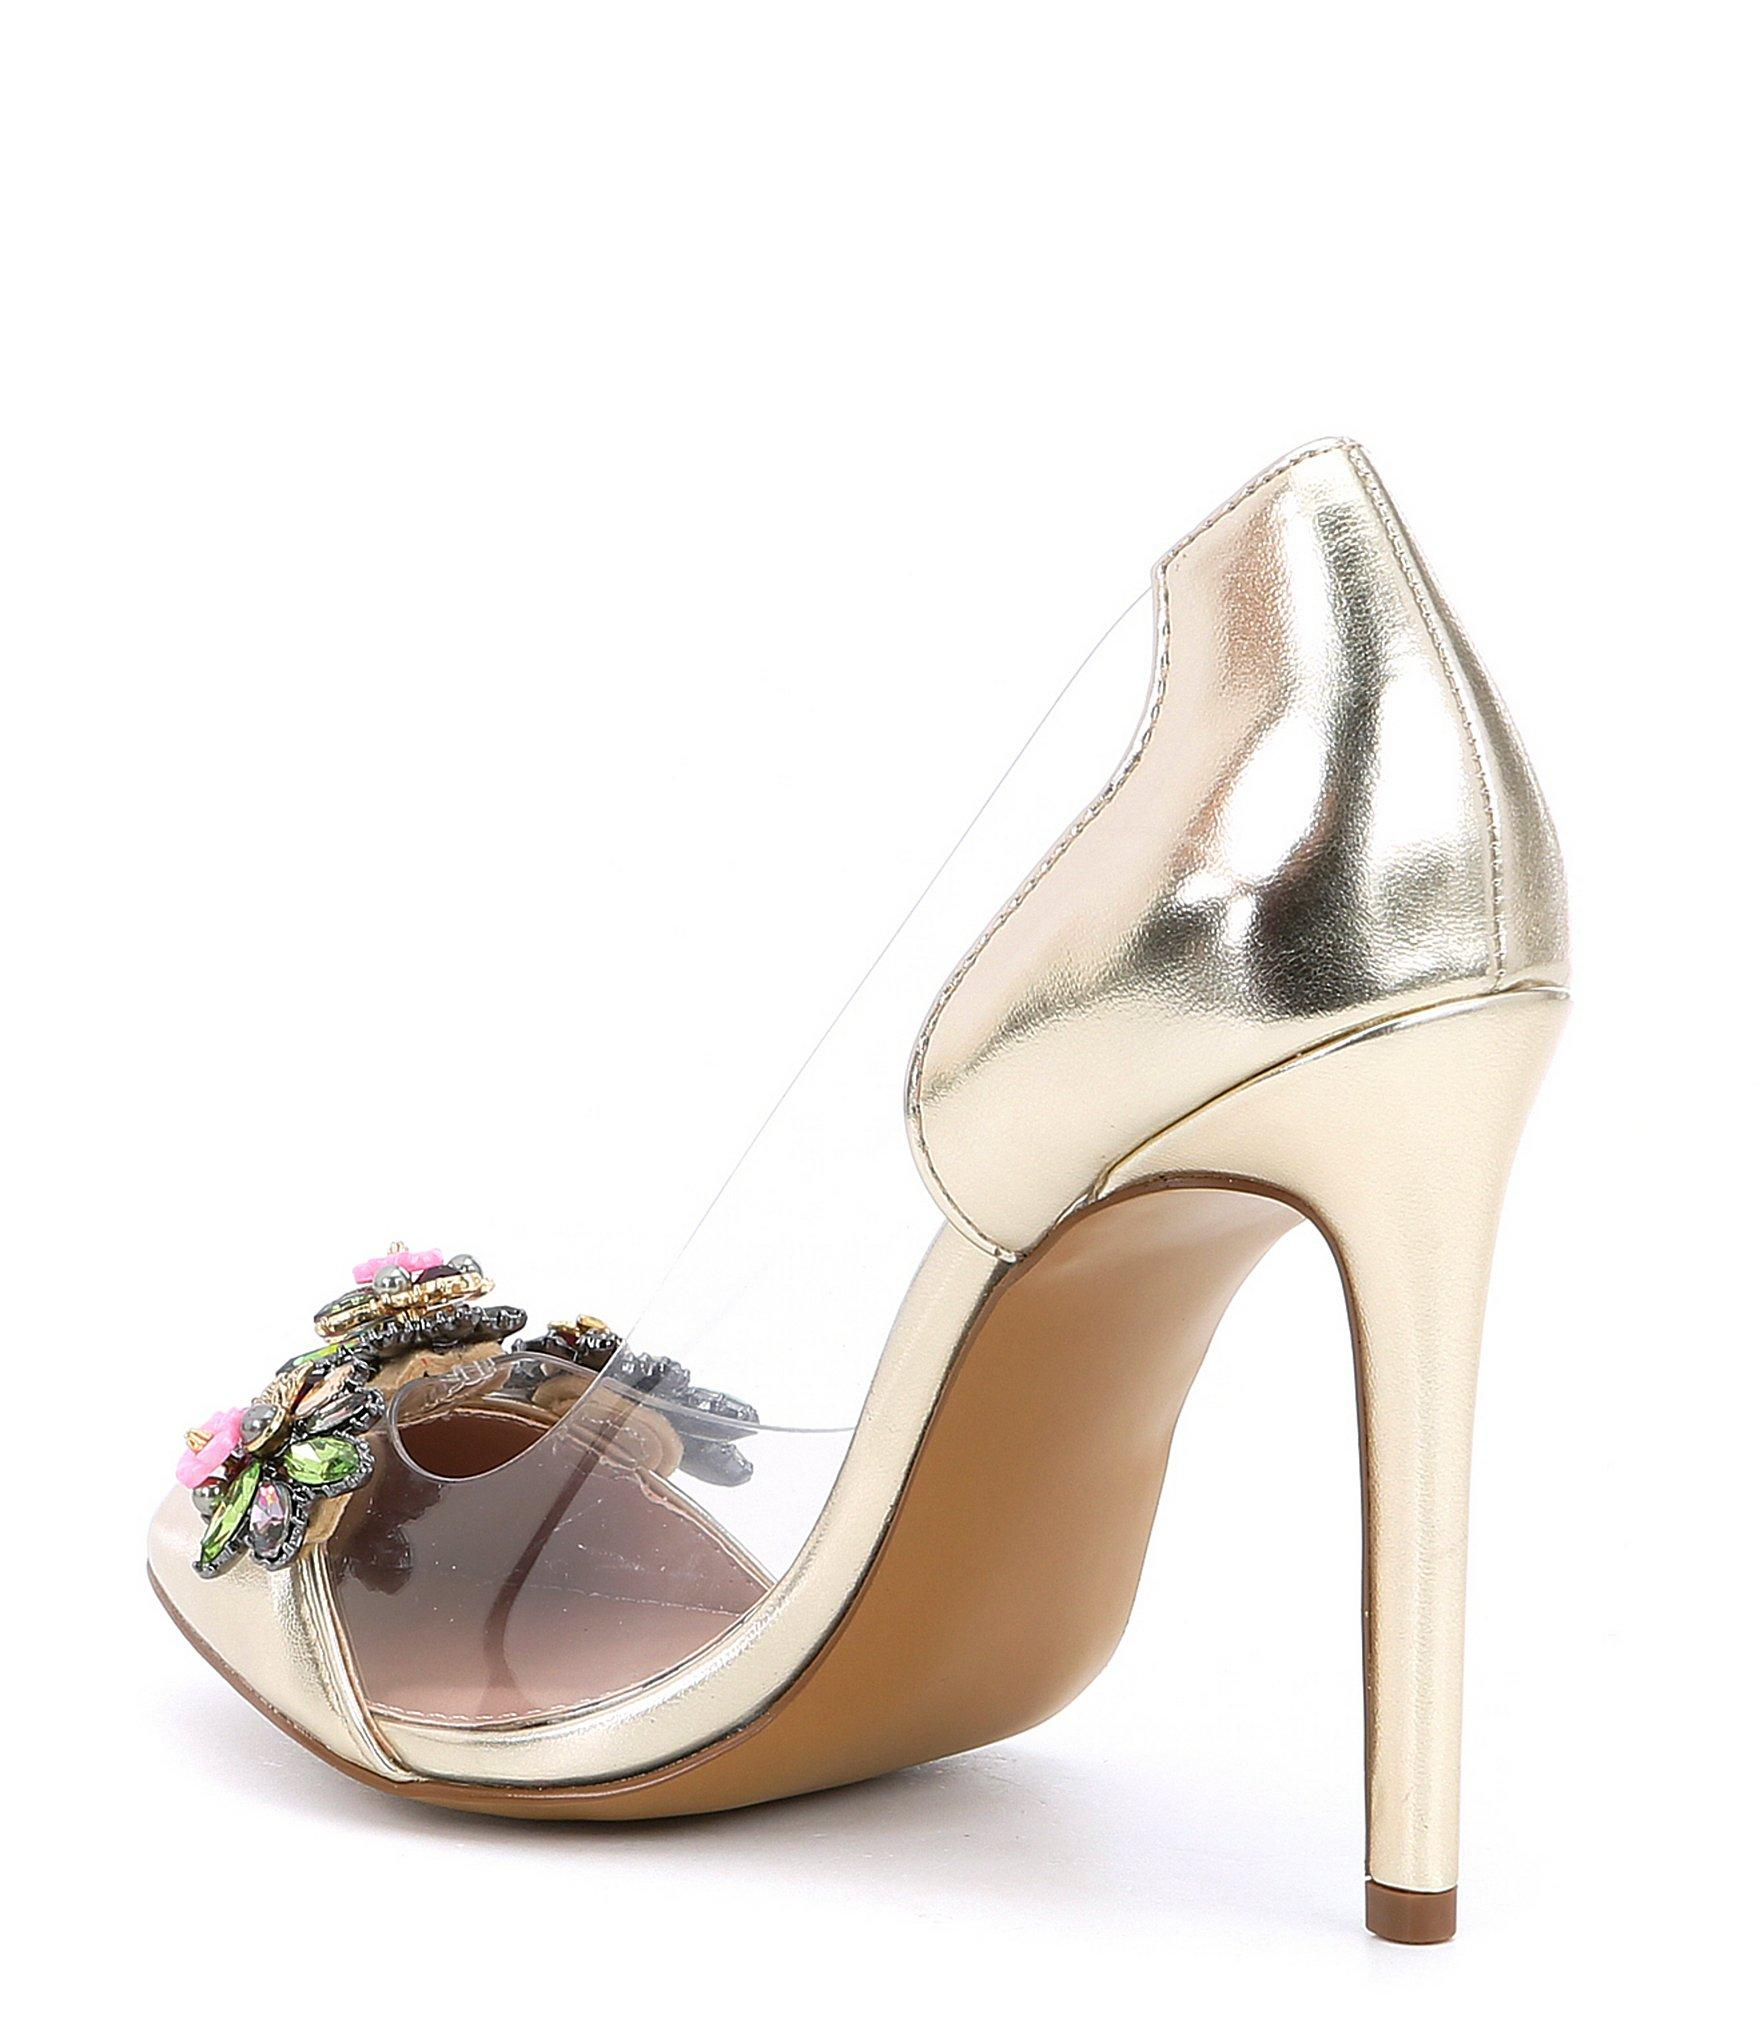 8be765b3400 Betsey Johnson Multicolor Jane Glitter Clear Lucite Floral Dress Pumps